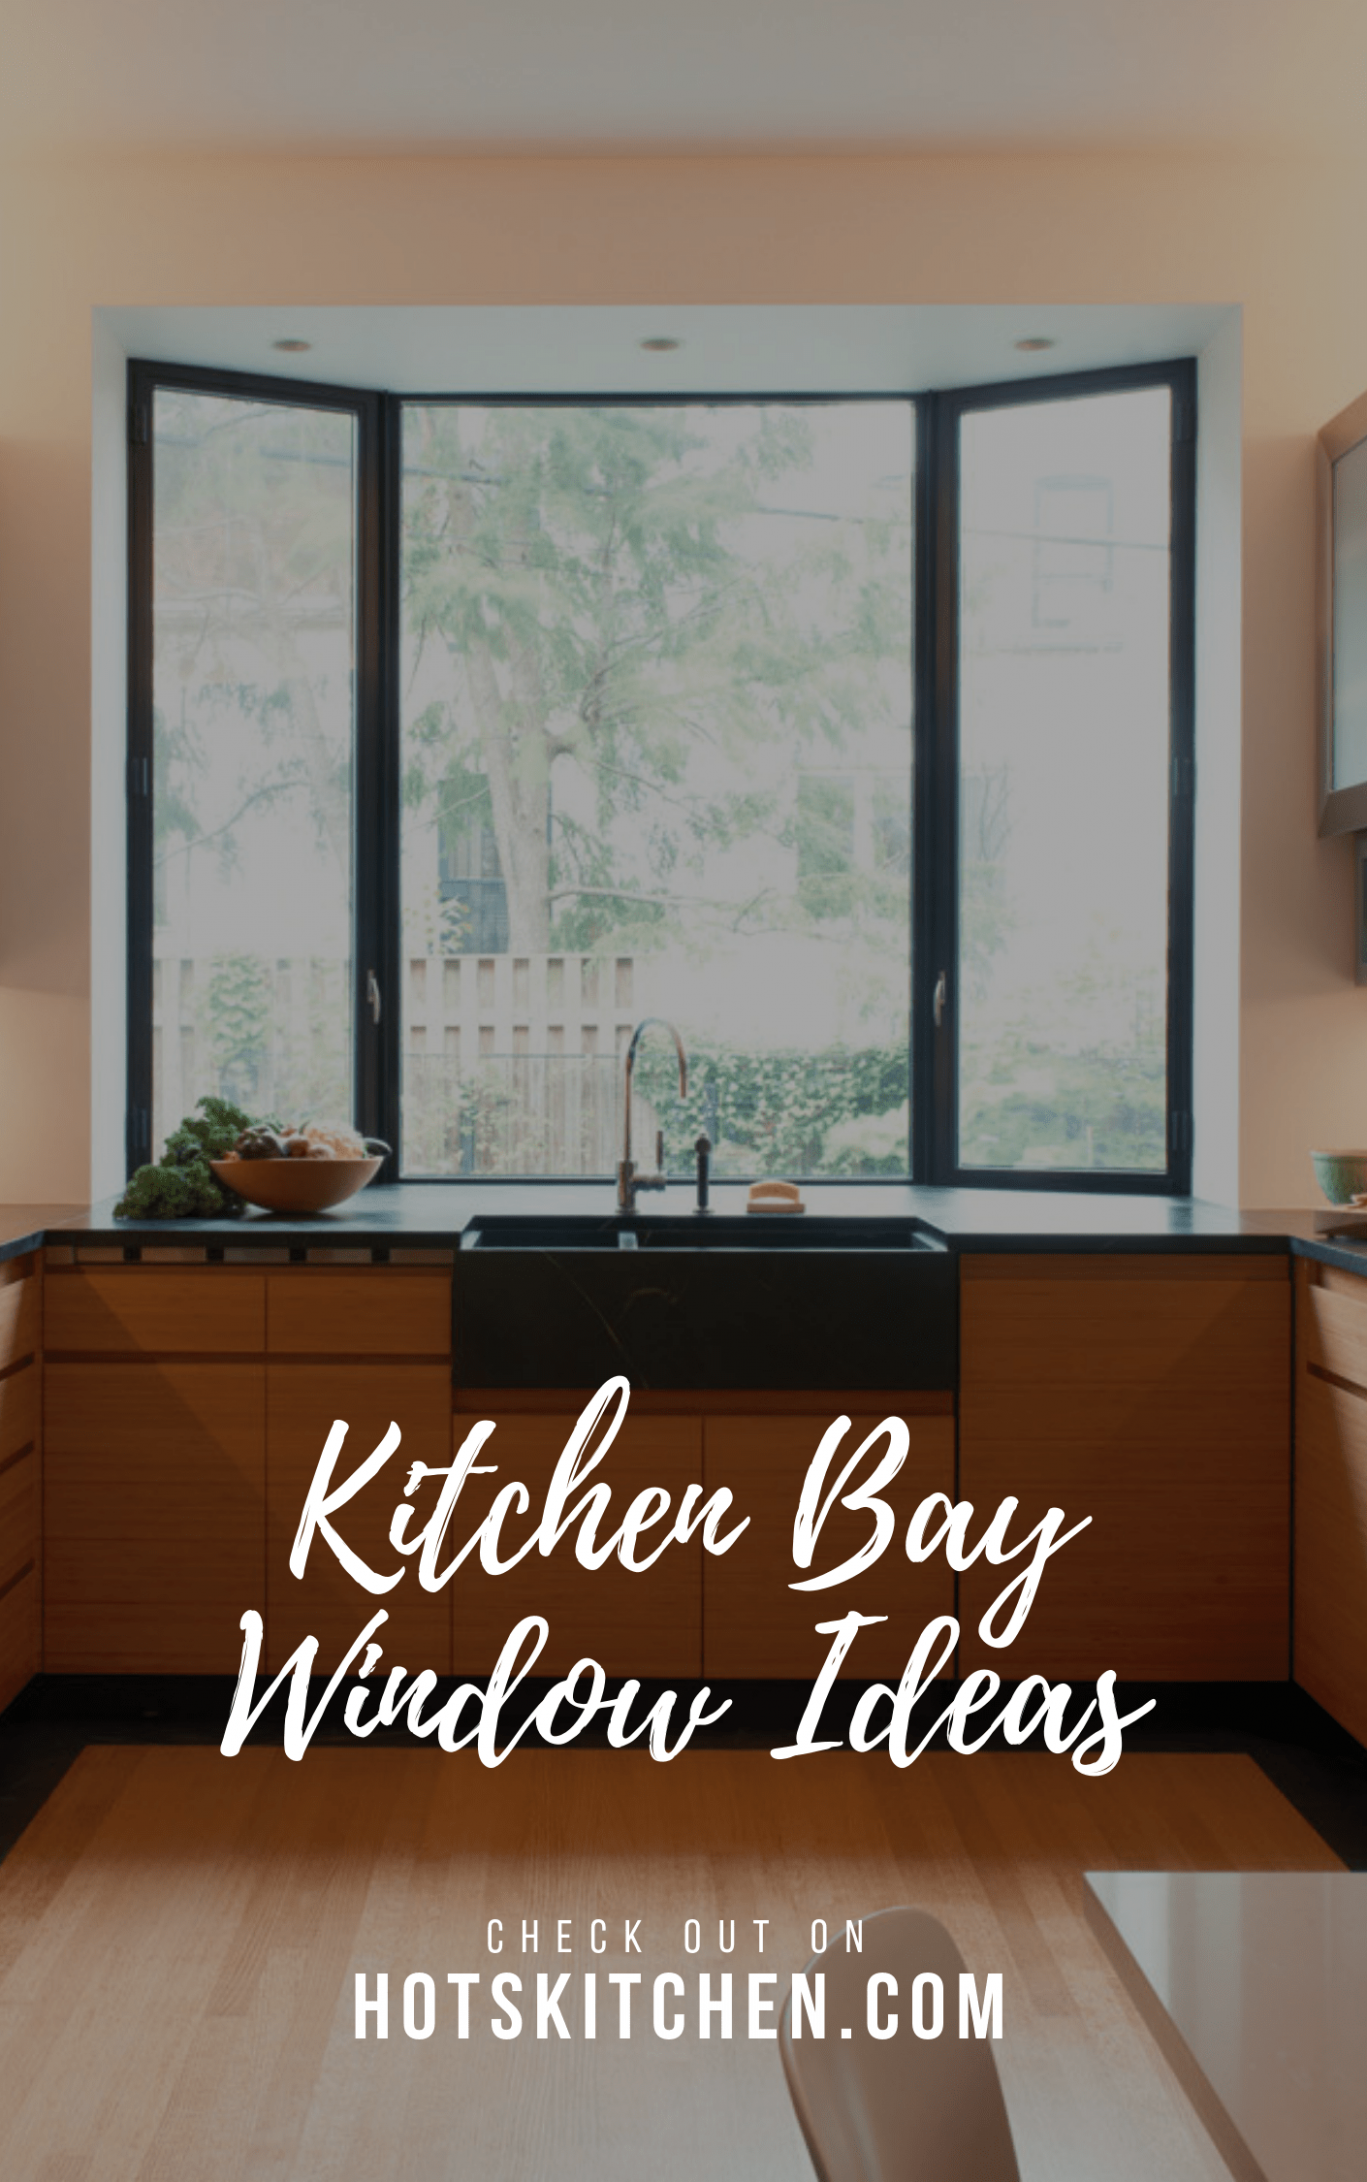 9+ Kitchen Bay Window Ideas (Type of Window & How to Decorate ...